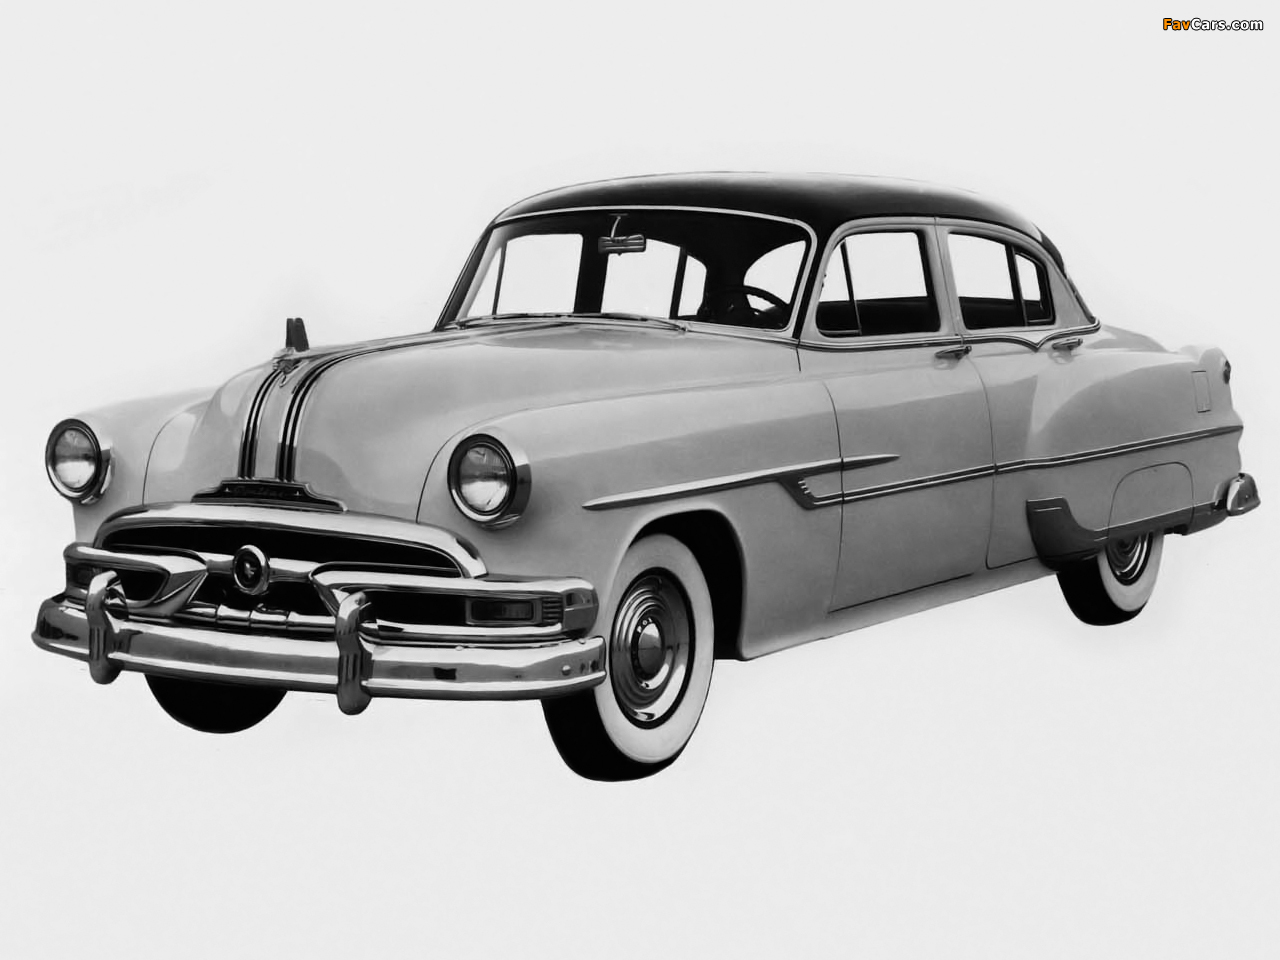 images of pontiac chieftain deluxe eight 4 door sedan